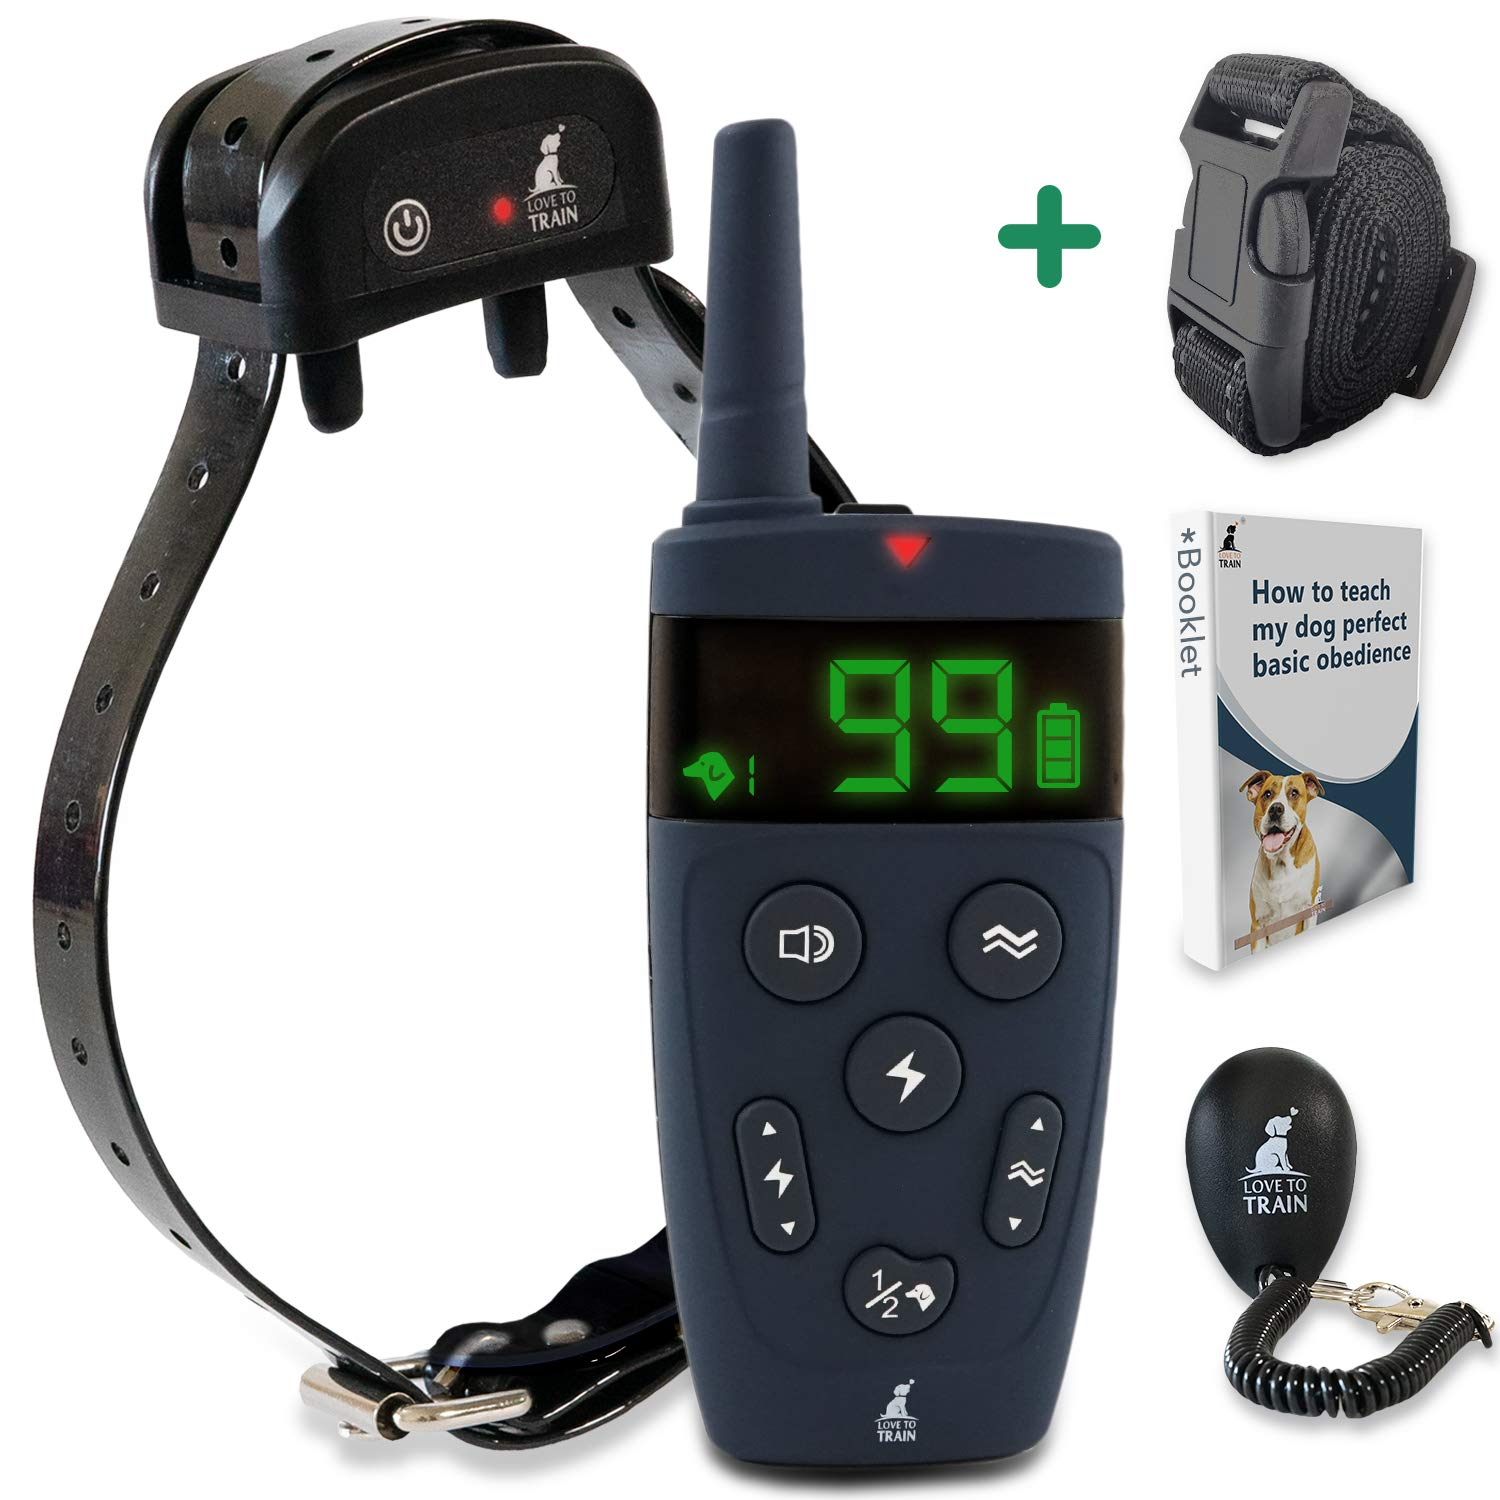 Love To Train Dog Training Collar with Remote 1600 Long-Range Electric Training Collar for Small, Medium, and Large Dogs Waterproof Dog Collar for All Breeds